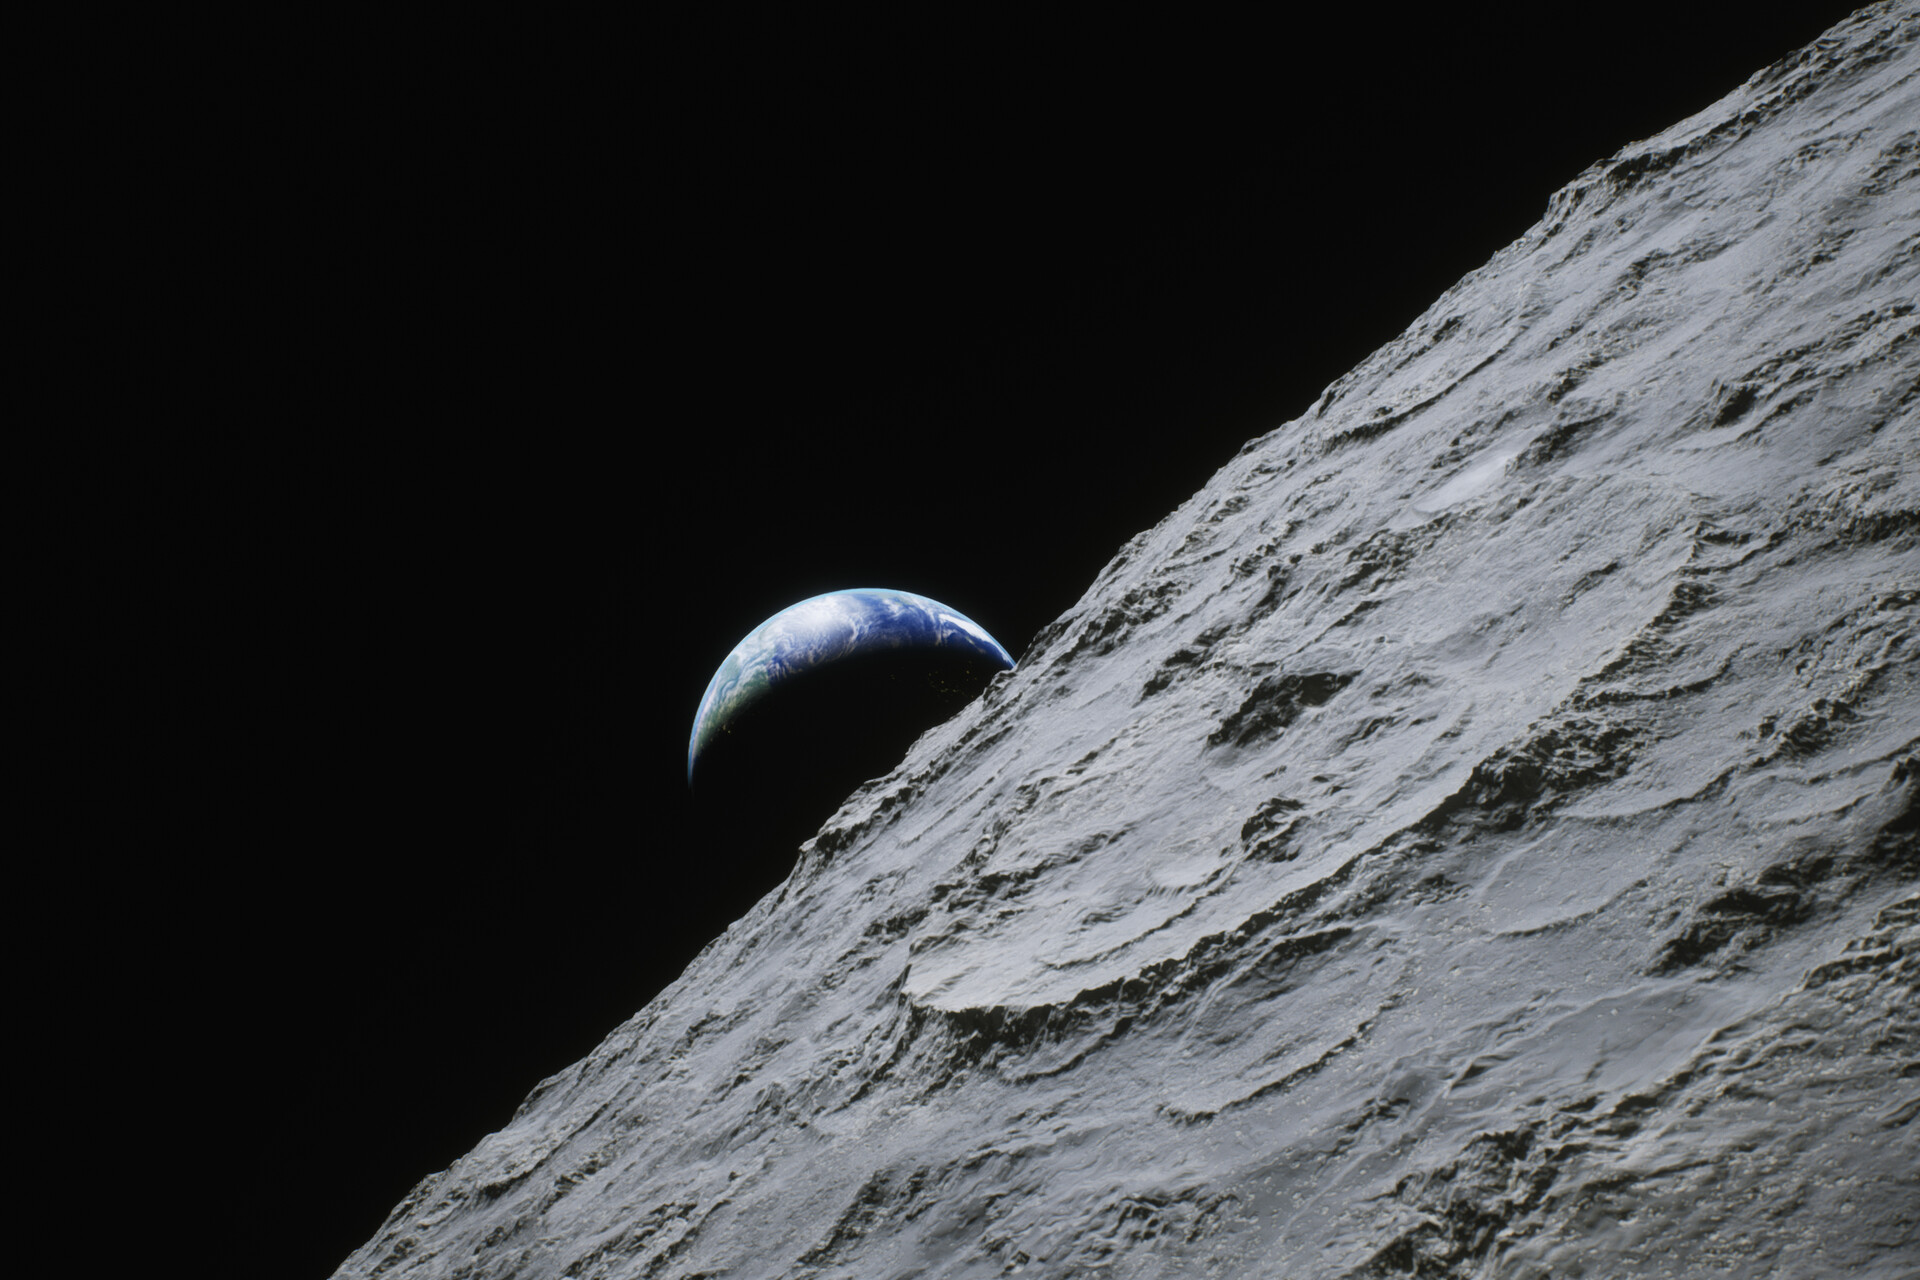 Another Earthrise recreation. Original photo - https://images.nasa.gov/details-as17-152-23274.html